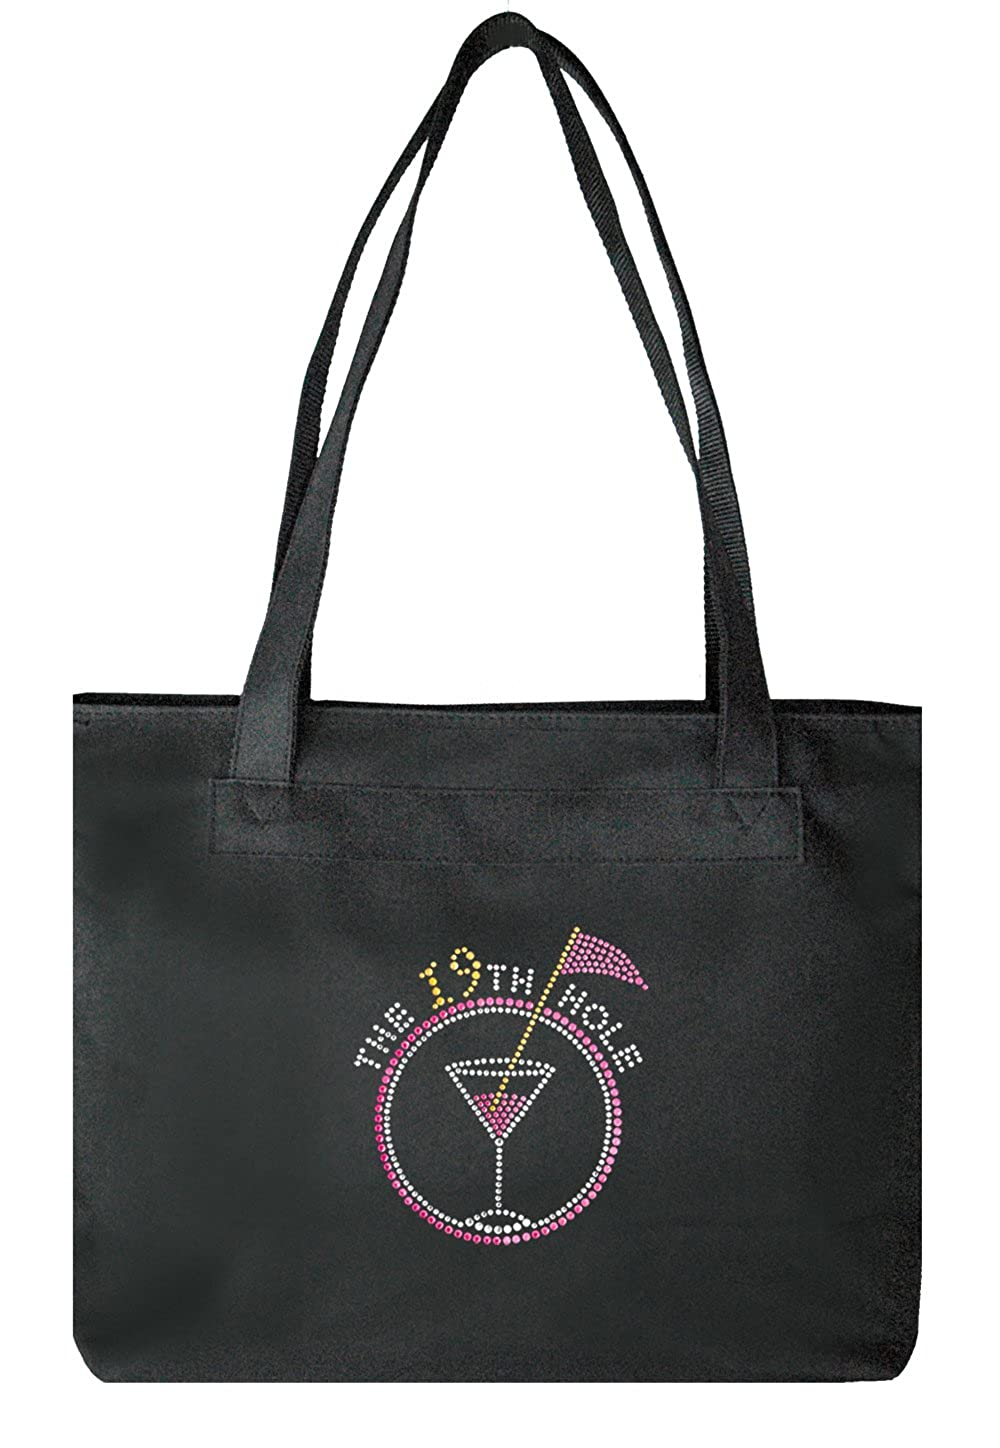 Susan Tote Bag with the 19th Hole logo